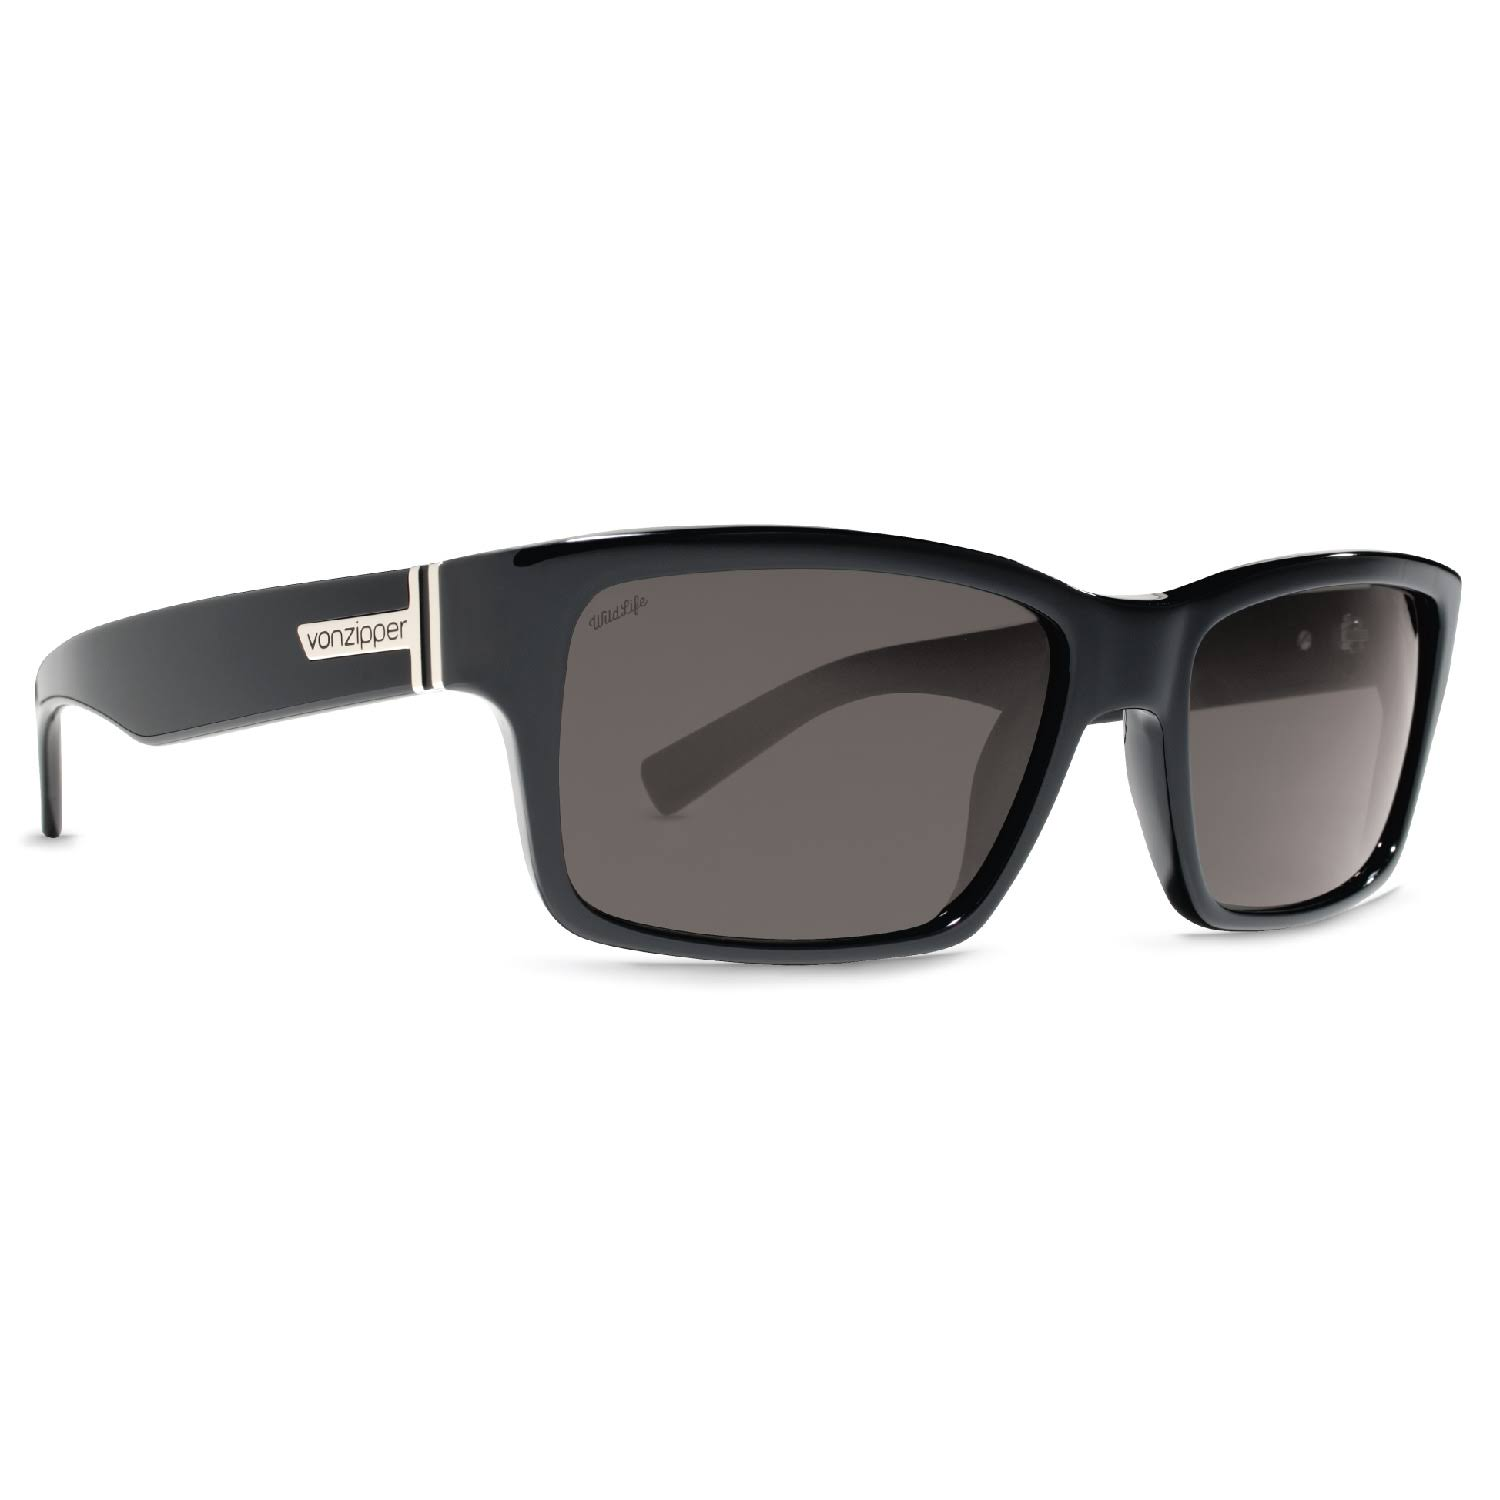 VonZipper Fulton Sunglasses Wildlife Polarized - Black Gloss